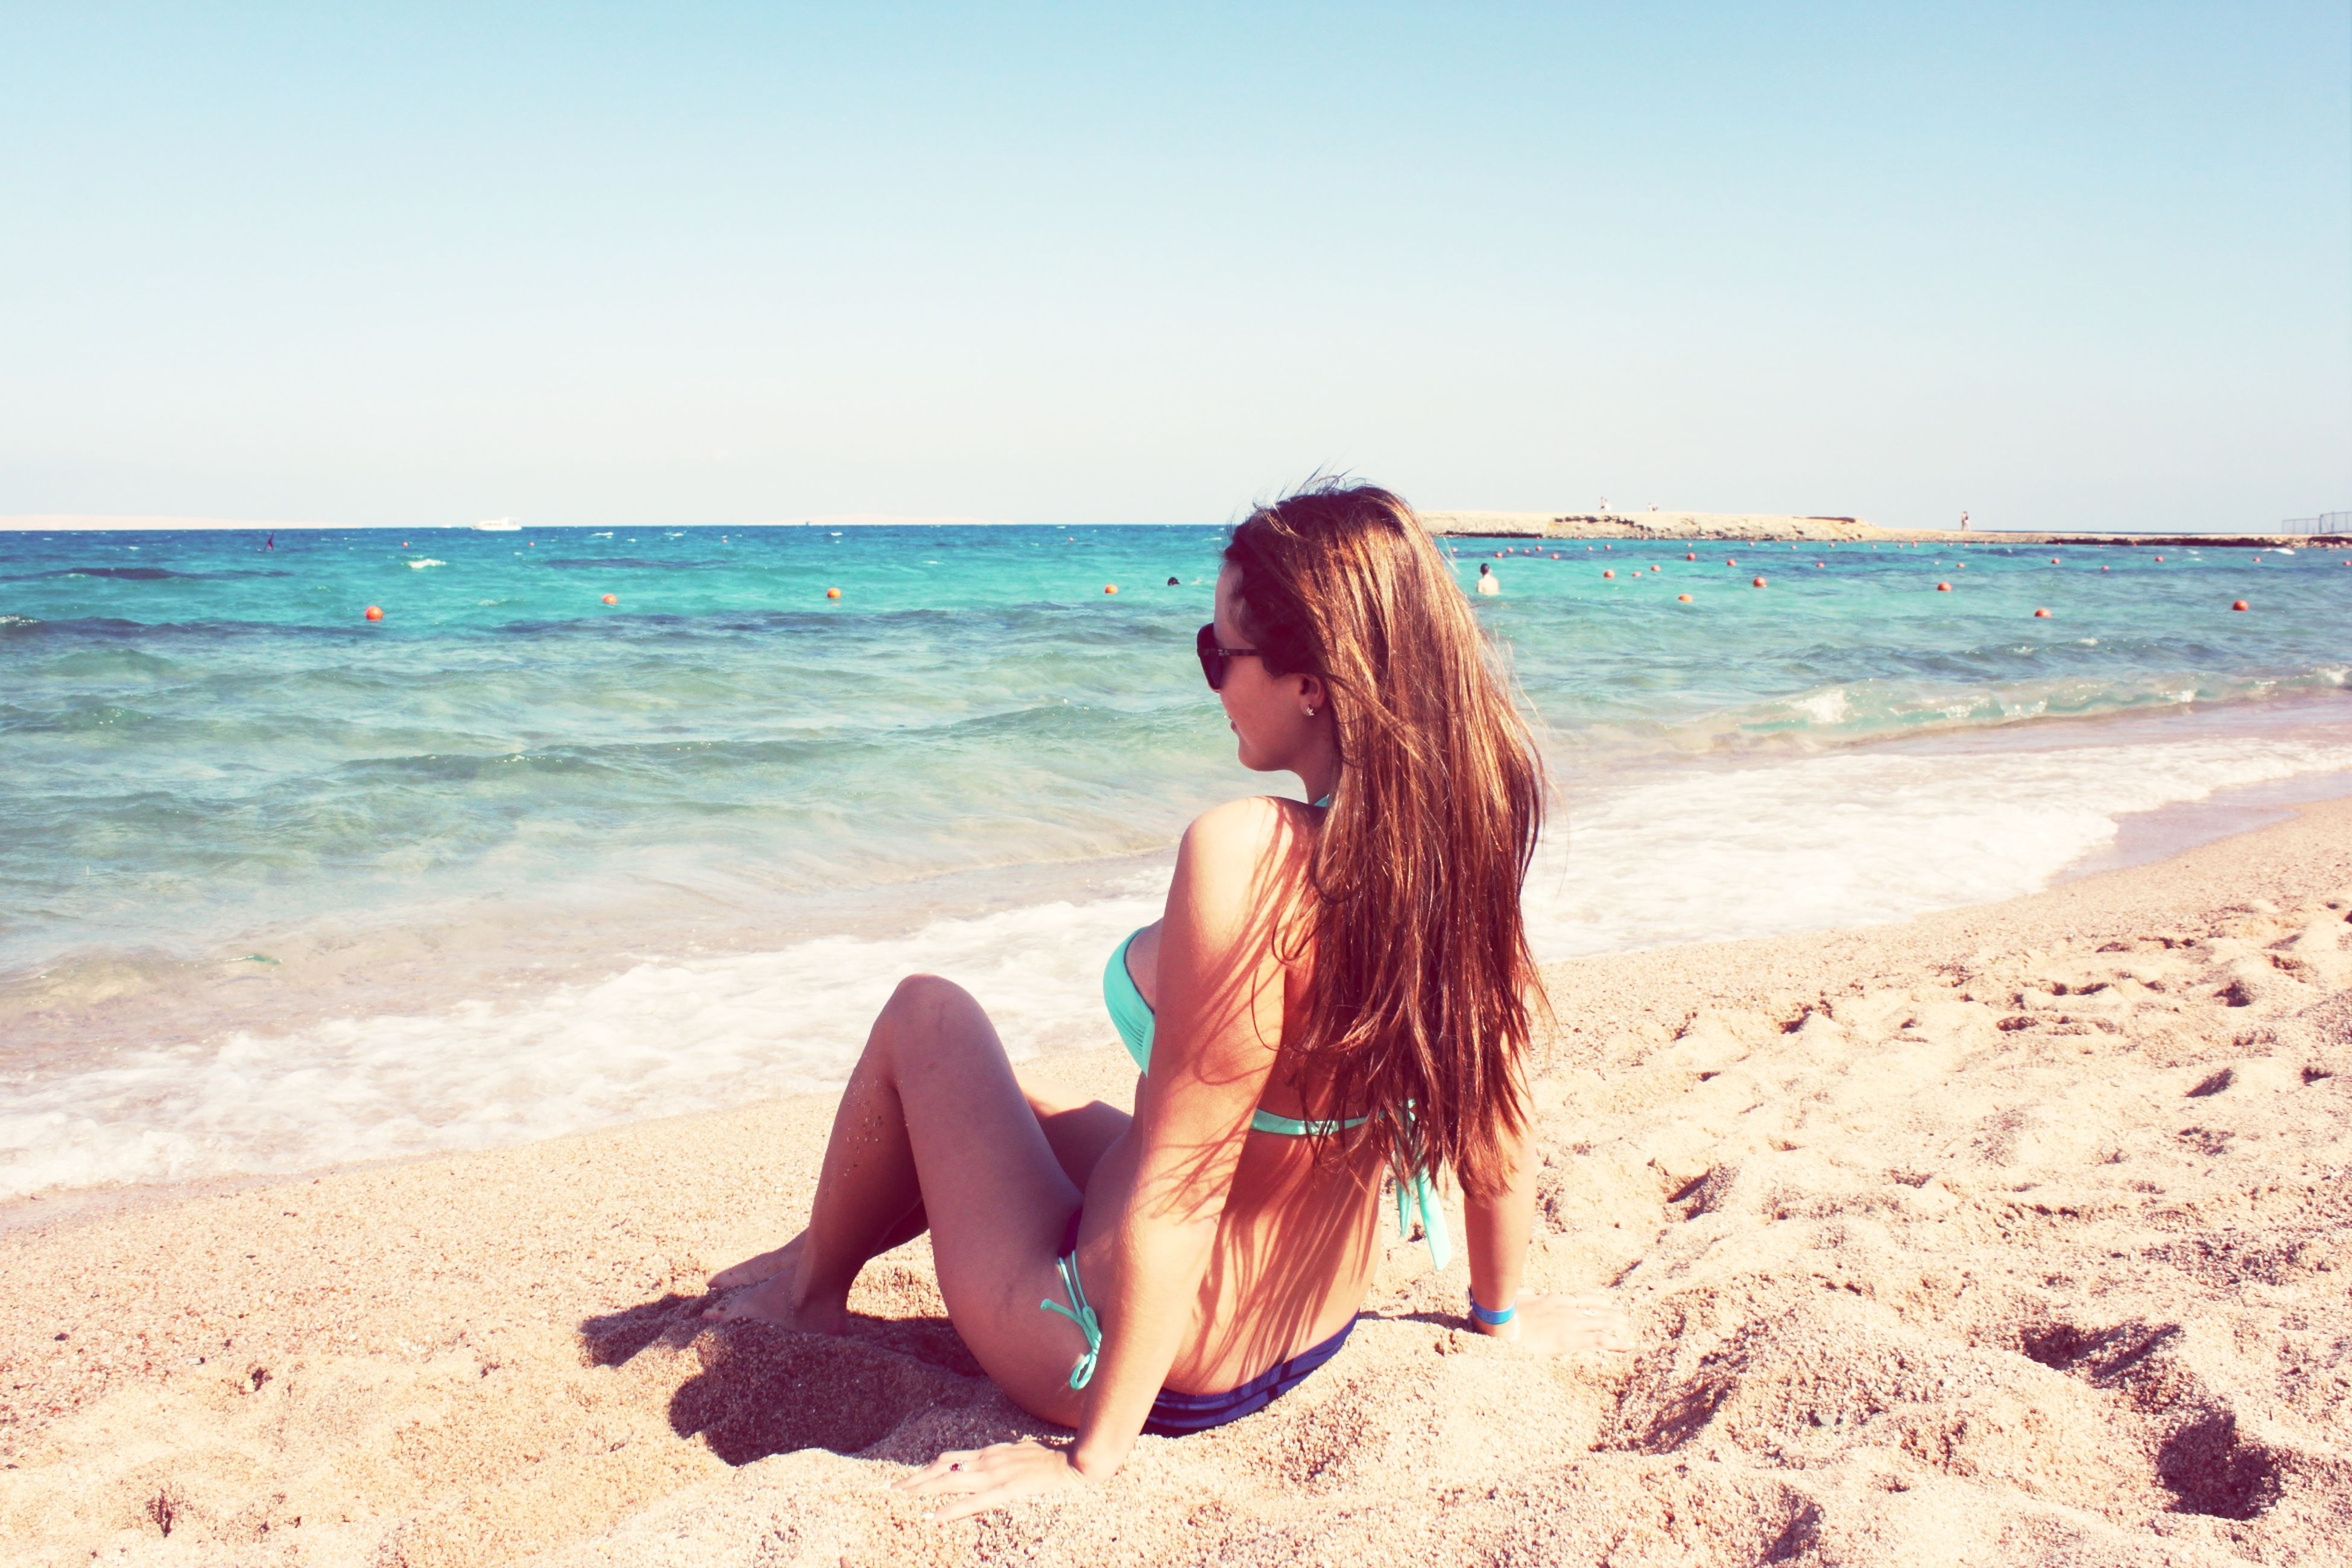 sea, beach, horizon over water, water, shore, sand, leisure activity, lifestyles, vacations, clear sky, young women, young adult, long hair, beauty in nature, tranquility, rear view, scenics, person